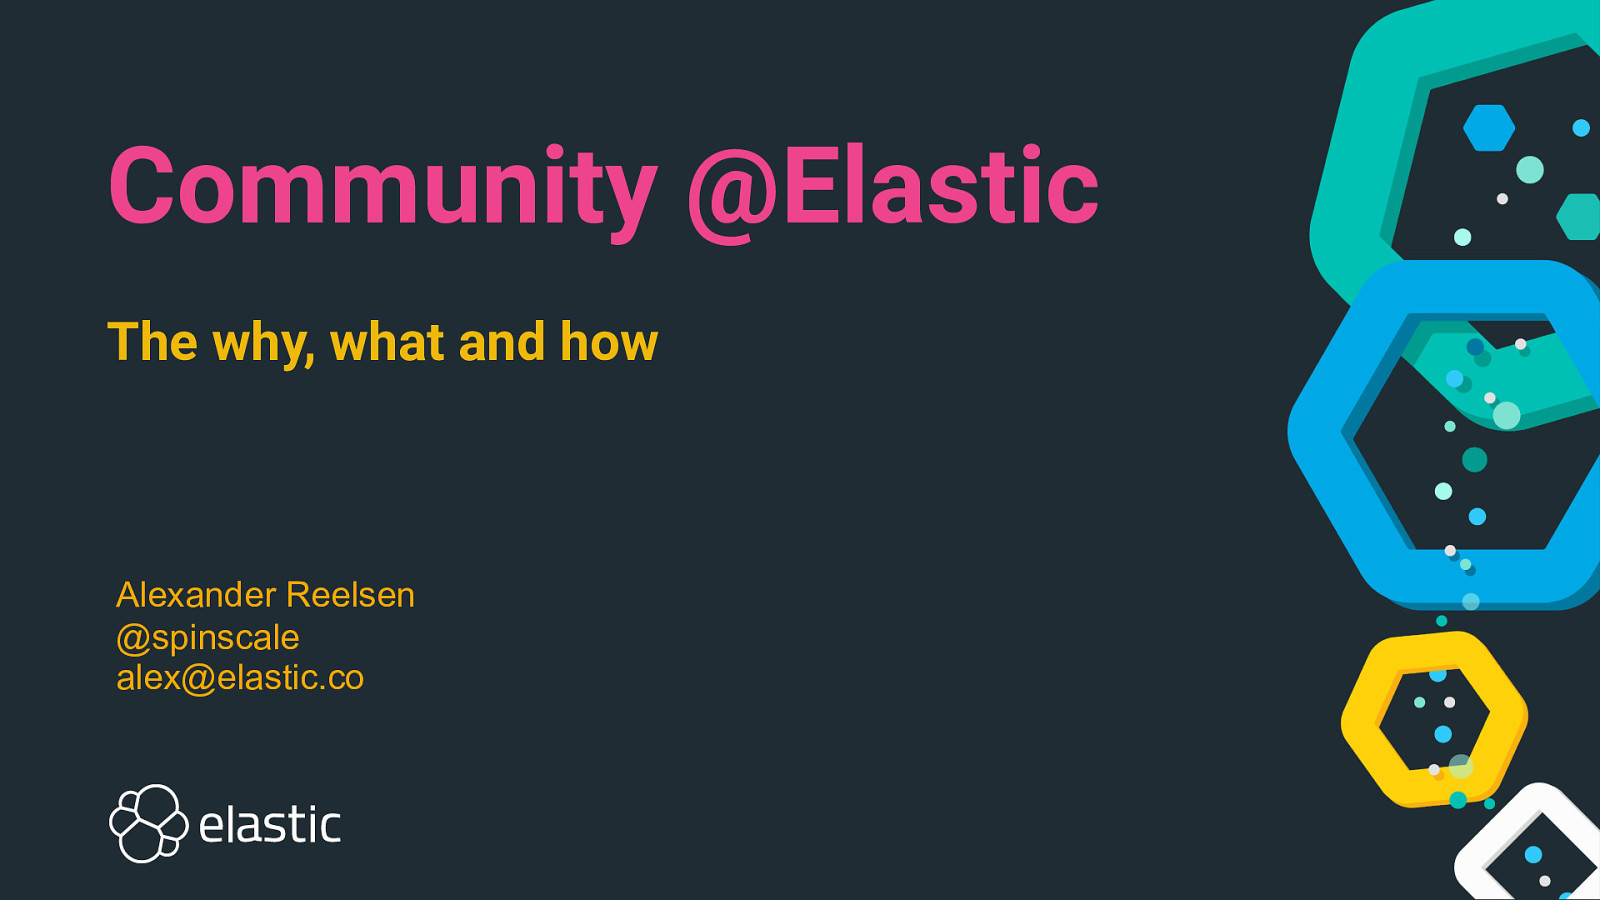 Community @Elastic - The why, what and how